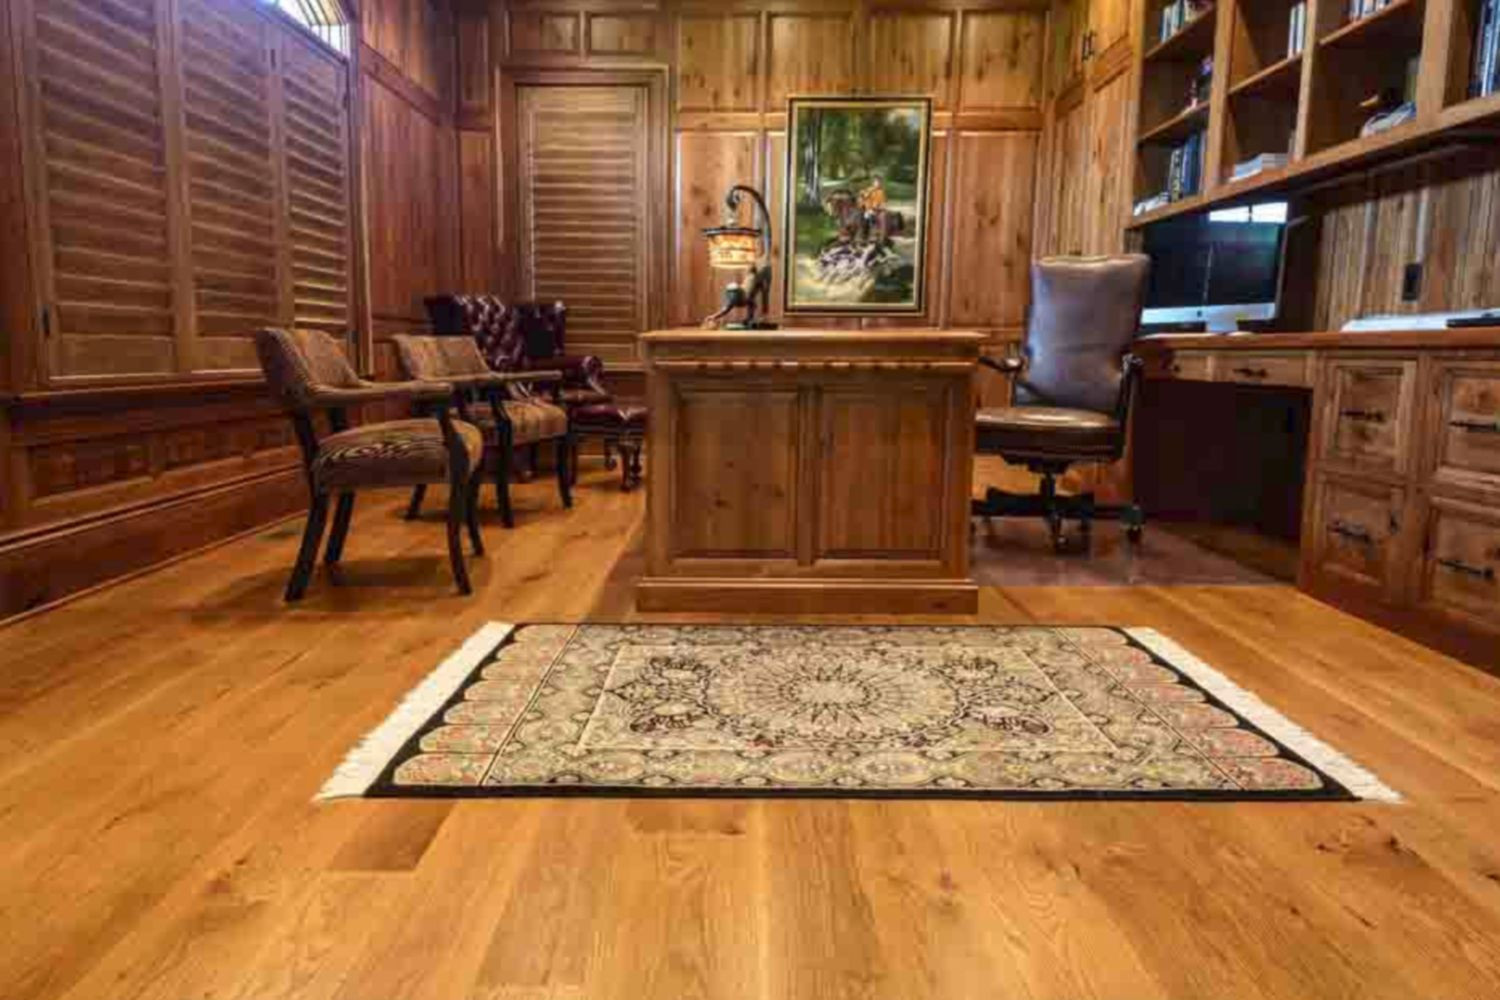 hardwood floor finish home depot of top 5 brands for solid hardwood flooring with the woods company white oak 1500 x 1000 56a49f6d5f9b58b7d0d7e1db